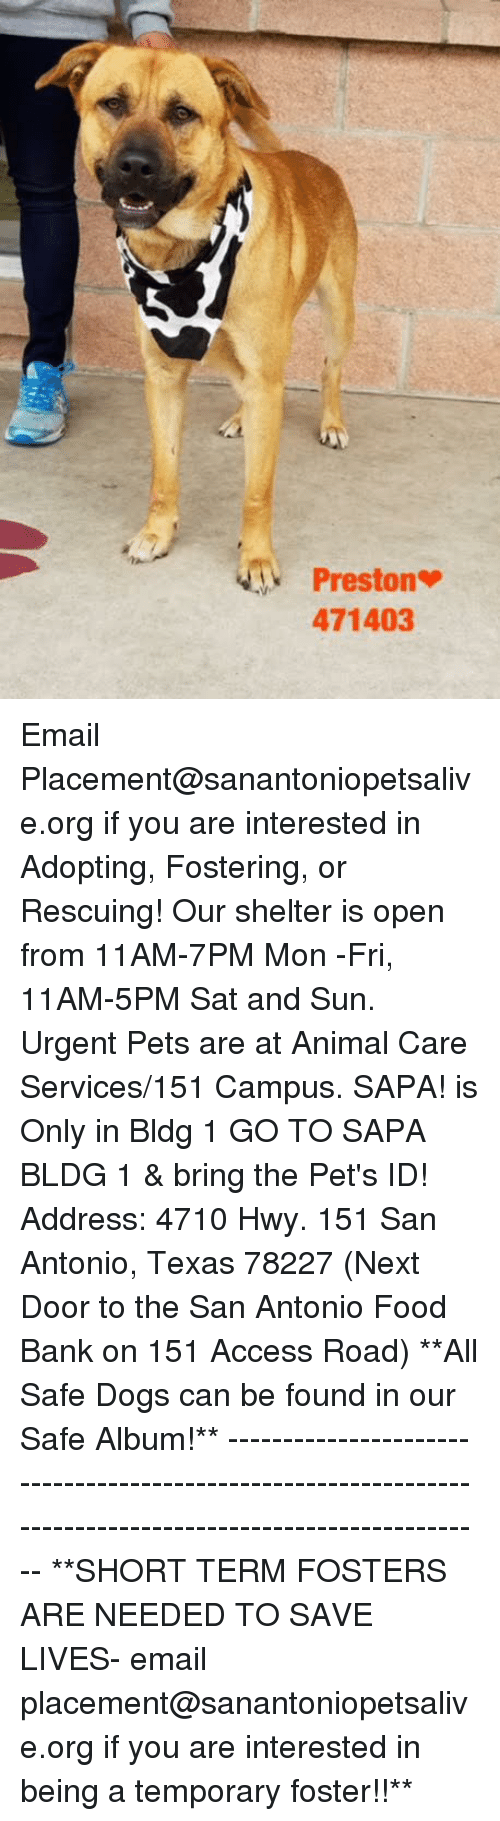 Dogs, Food, and Memes: Preston  471403 Email Placement@sanantoniopetsalive.org if you are interested in Adopting, Fostering, or Rescuing!  Our shelter is open from 11AM-7PM Mon -Fri, 11AM-5PM Sat and Sun.  Urgent Pets are at Animal Care Services/151 Campus. SAPA! is Only in Bldg 1 GO TO SAPA BLDG 1 & bring the Pet's ID! Address: 4710 Hwy. 151 San Antonio, Texas 78227 (Next Door to the San Antonio Food Bank on 151 Access Road)  **All Safe Dogs can be found in our Safe Album!** ---------------------------------------------------------------------------------------------------------- **SHORT TERM FOSTERS ARE NEEDED TO SAVE LIVES- email placement@sanantoniopetsalive.org if you are interested in being a temporary foster!!**